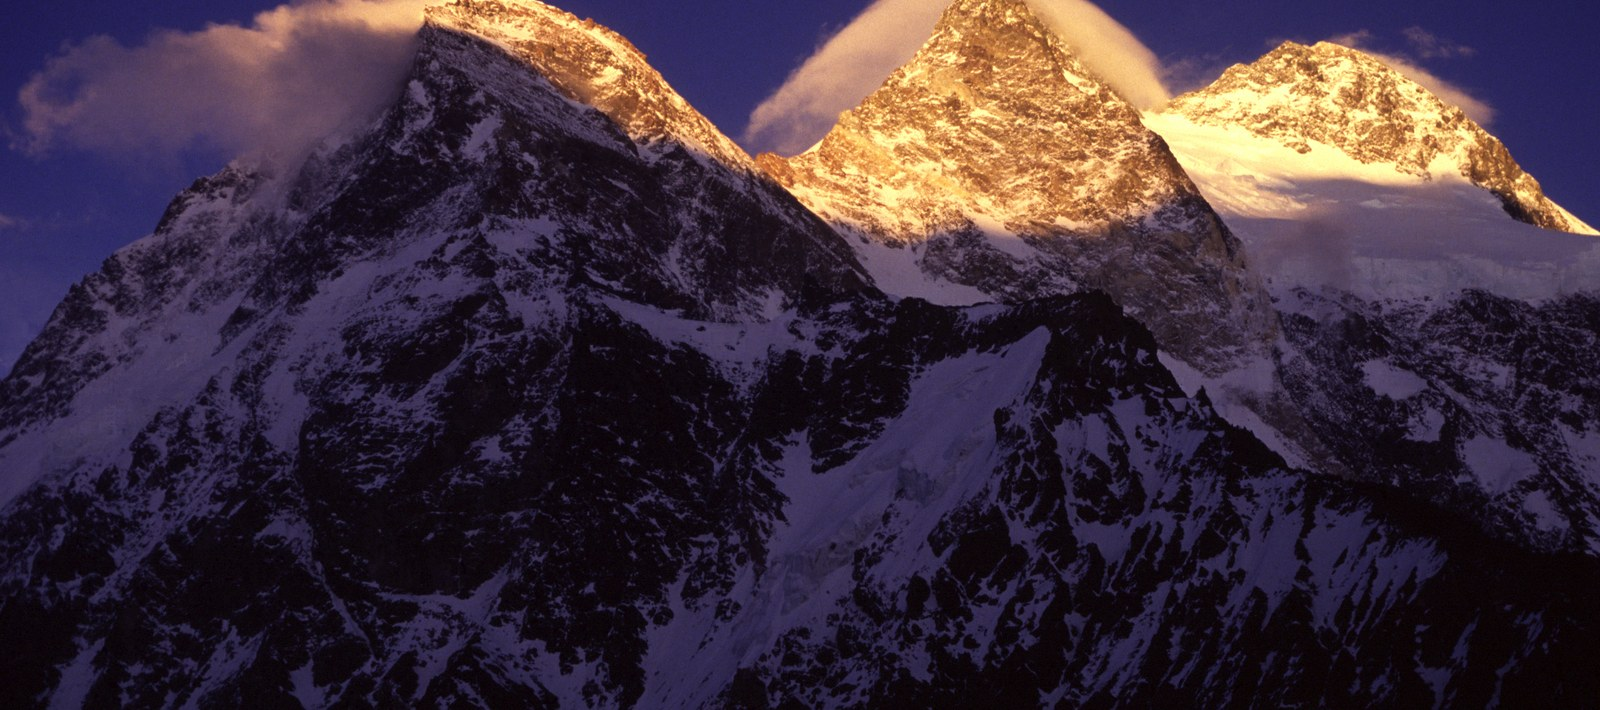 The Karakorum is the most amazing mountain range you will ever find.